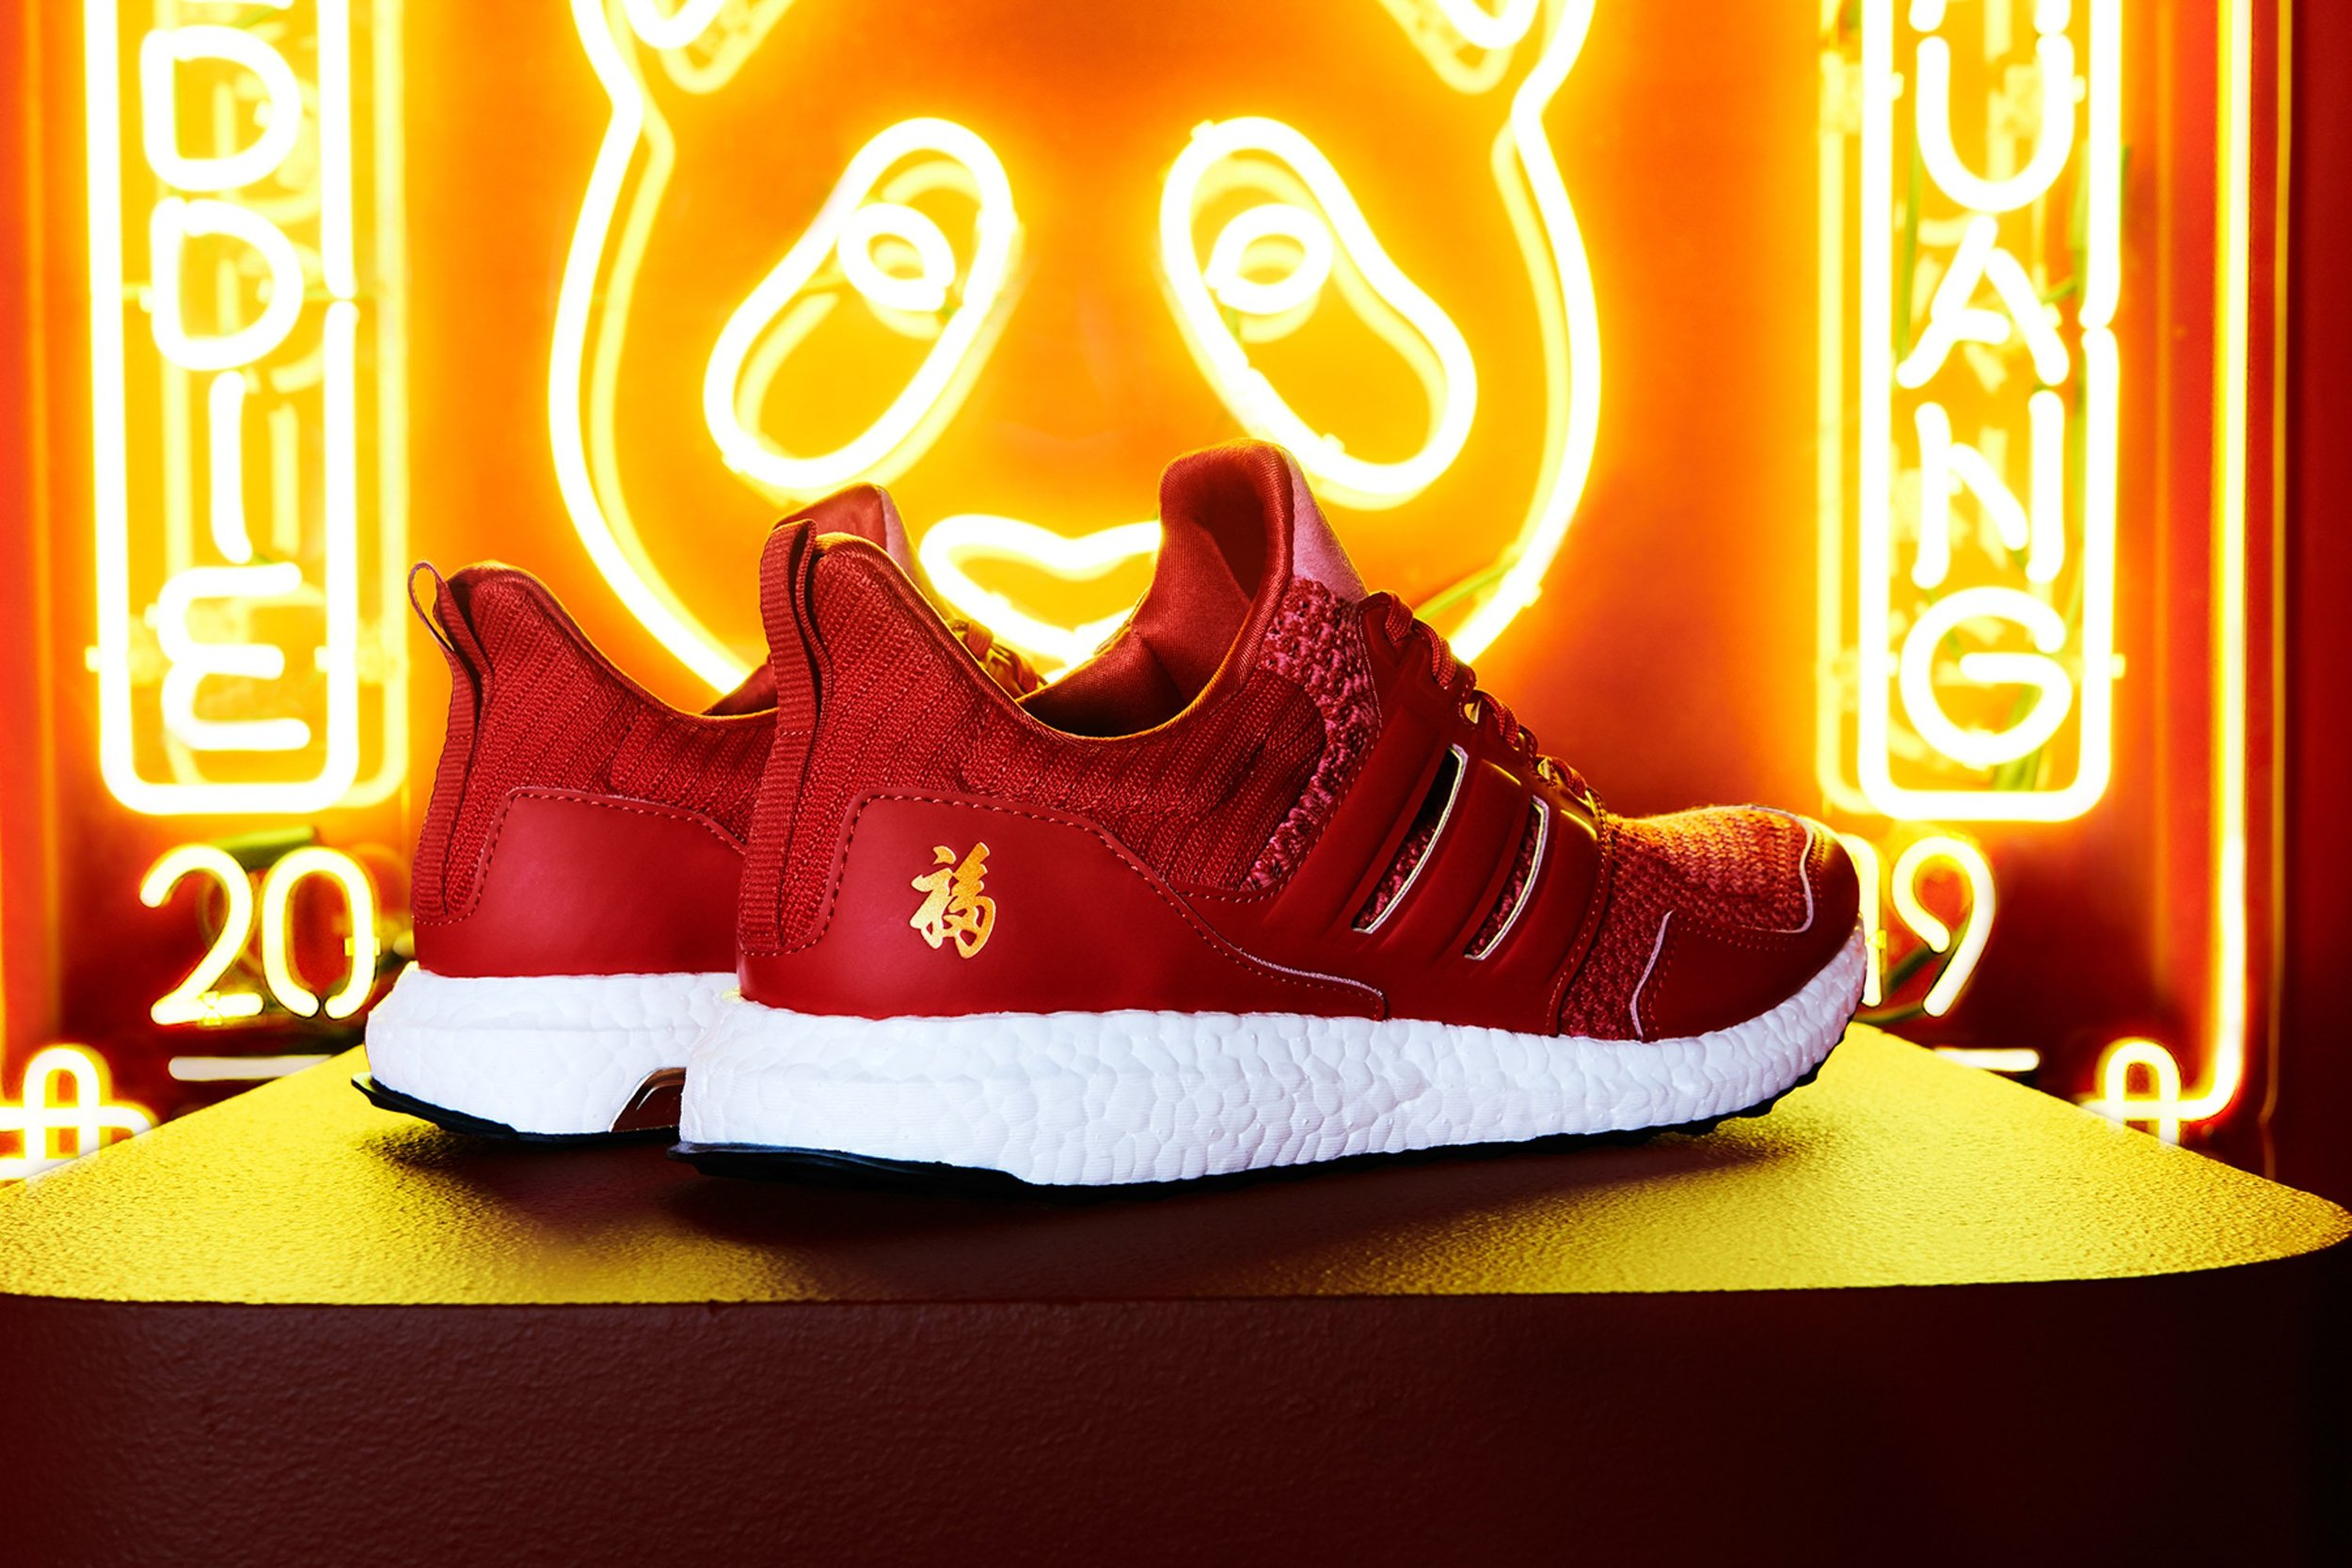 Eddie_Huang_for_adidas_Ultraboost_Chinese_New_Year_Sneaker_politics_-11.jpg